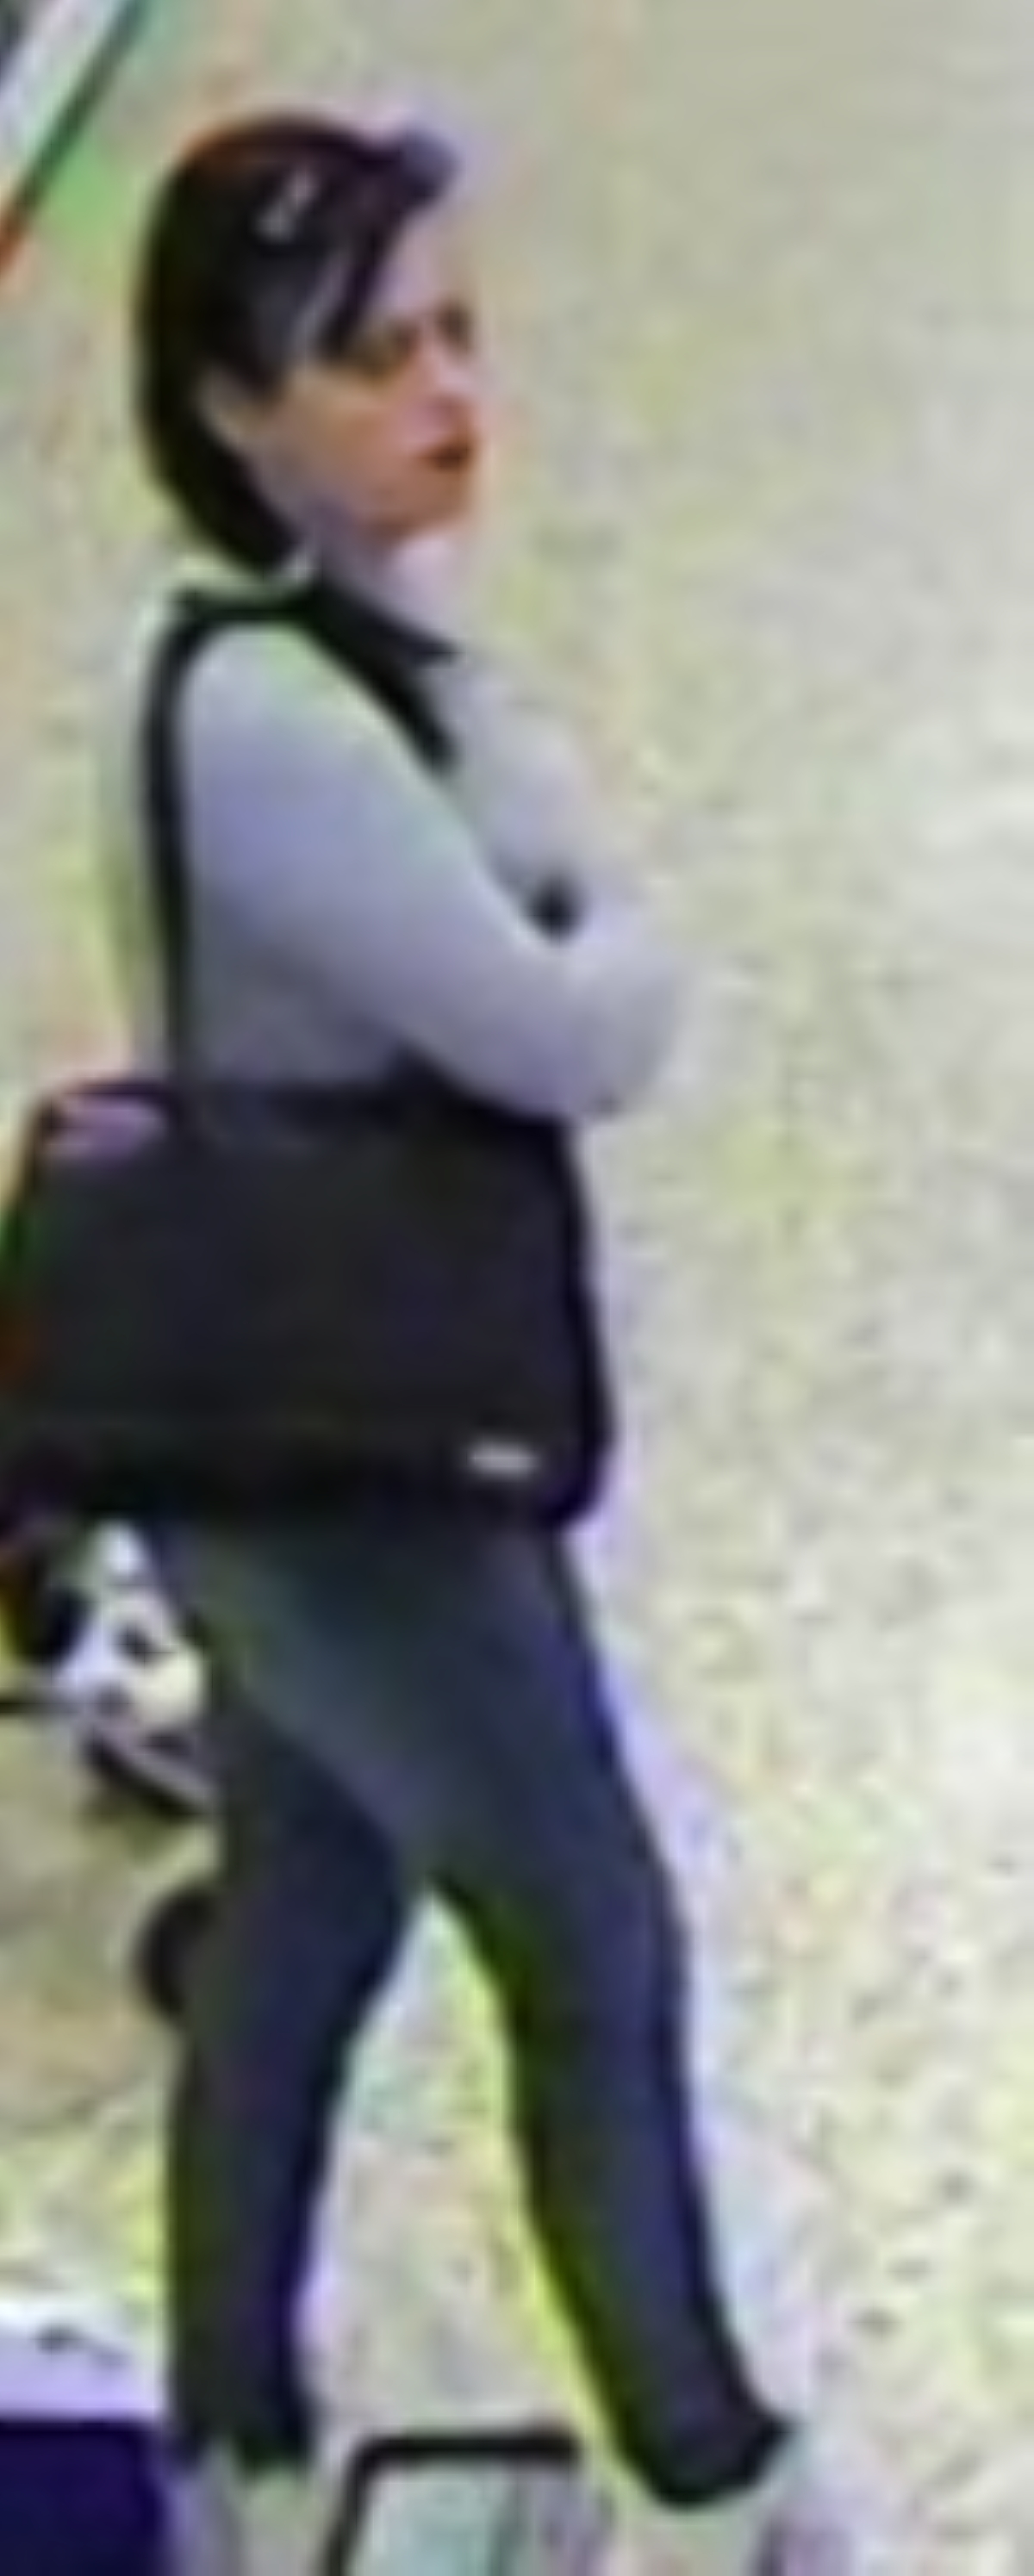 CCTV released following DVD thefts from Rickmansworth Tesco